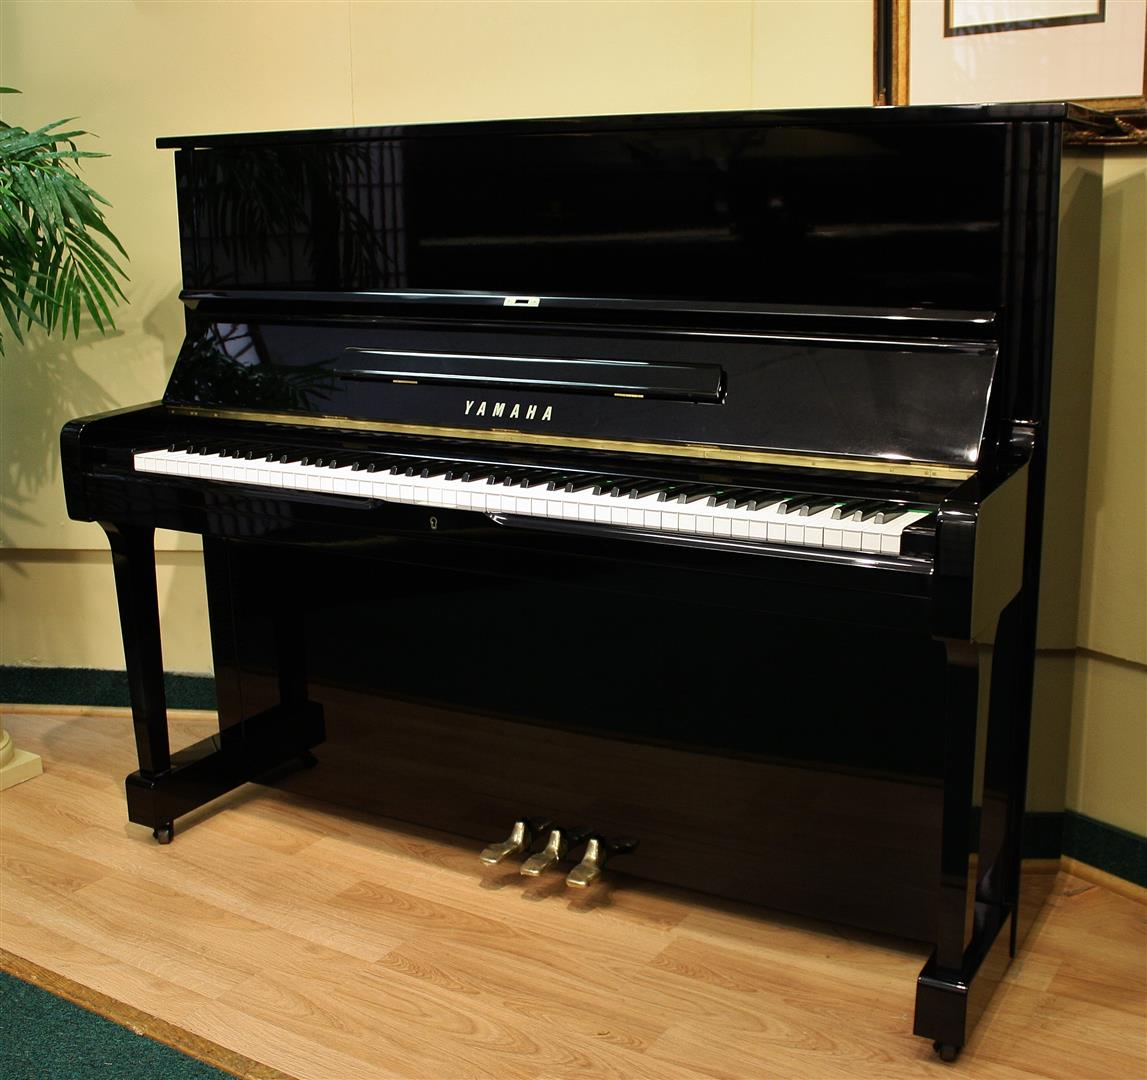 Four star reconditoned yamaha yamaha u1 upright piano 48 for Yamaha piano com